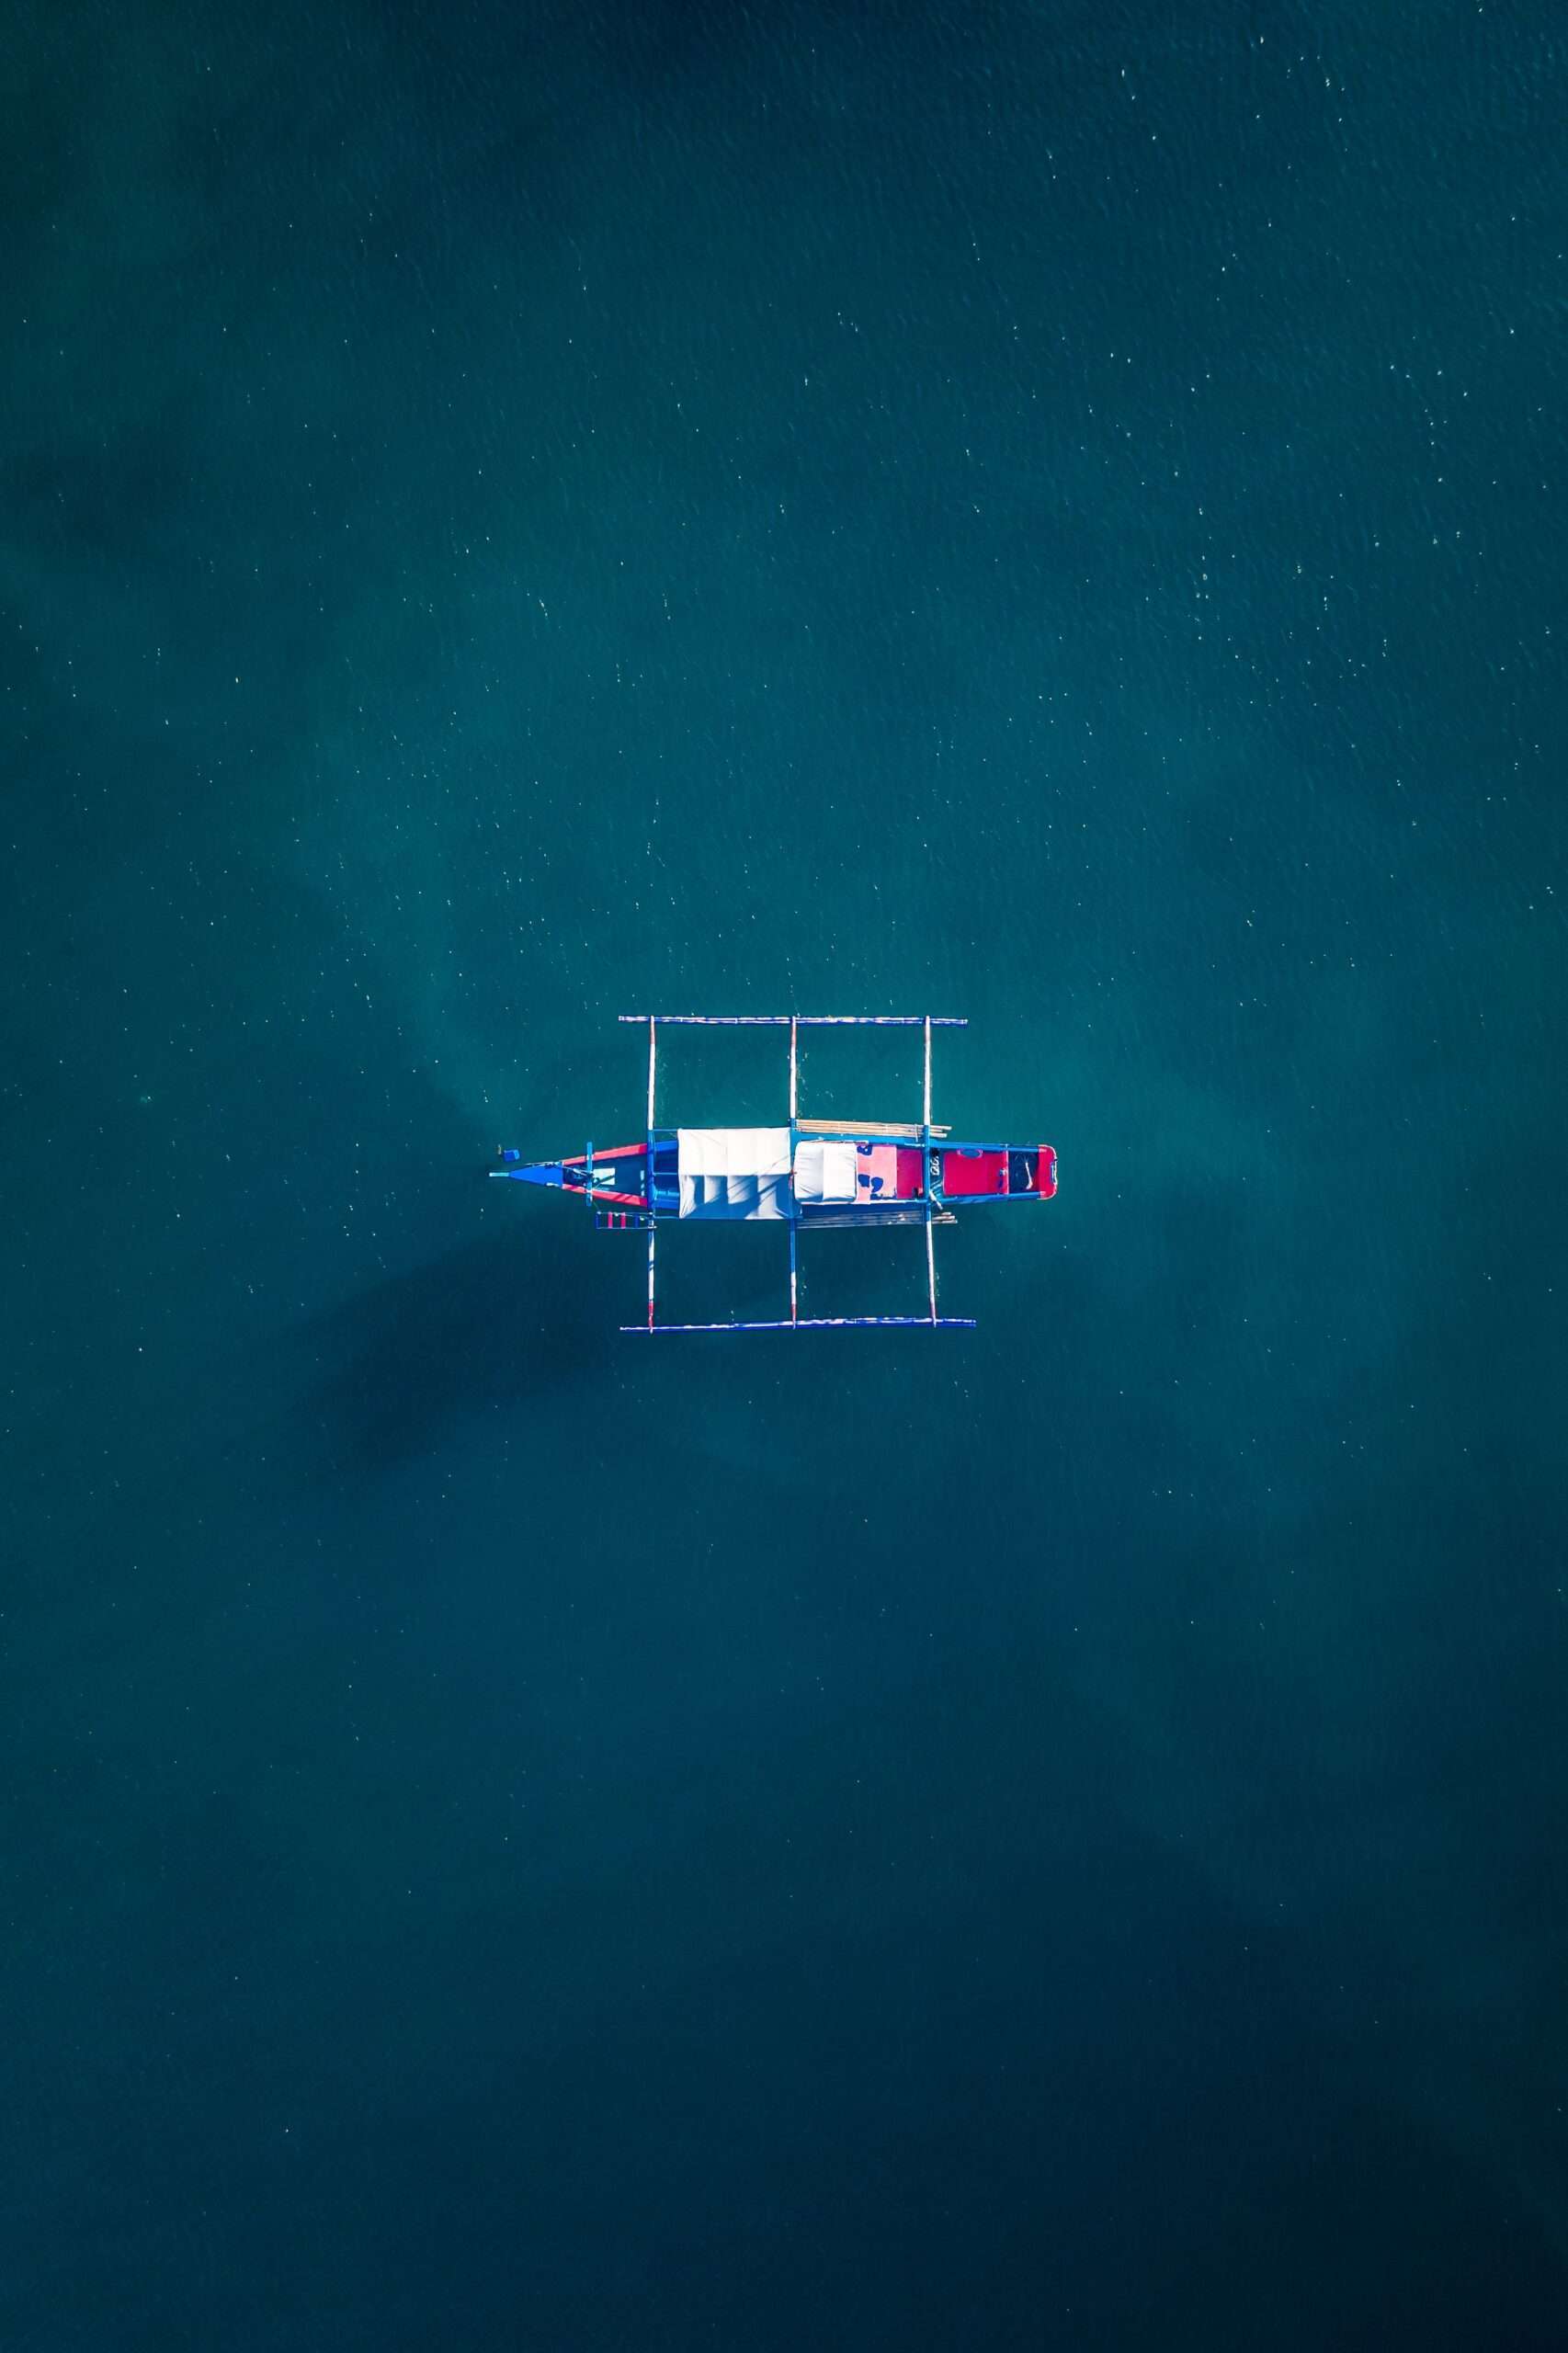 blue, white and red wooden boat on the water in Coron, Philippines